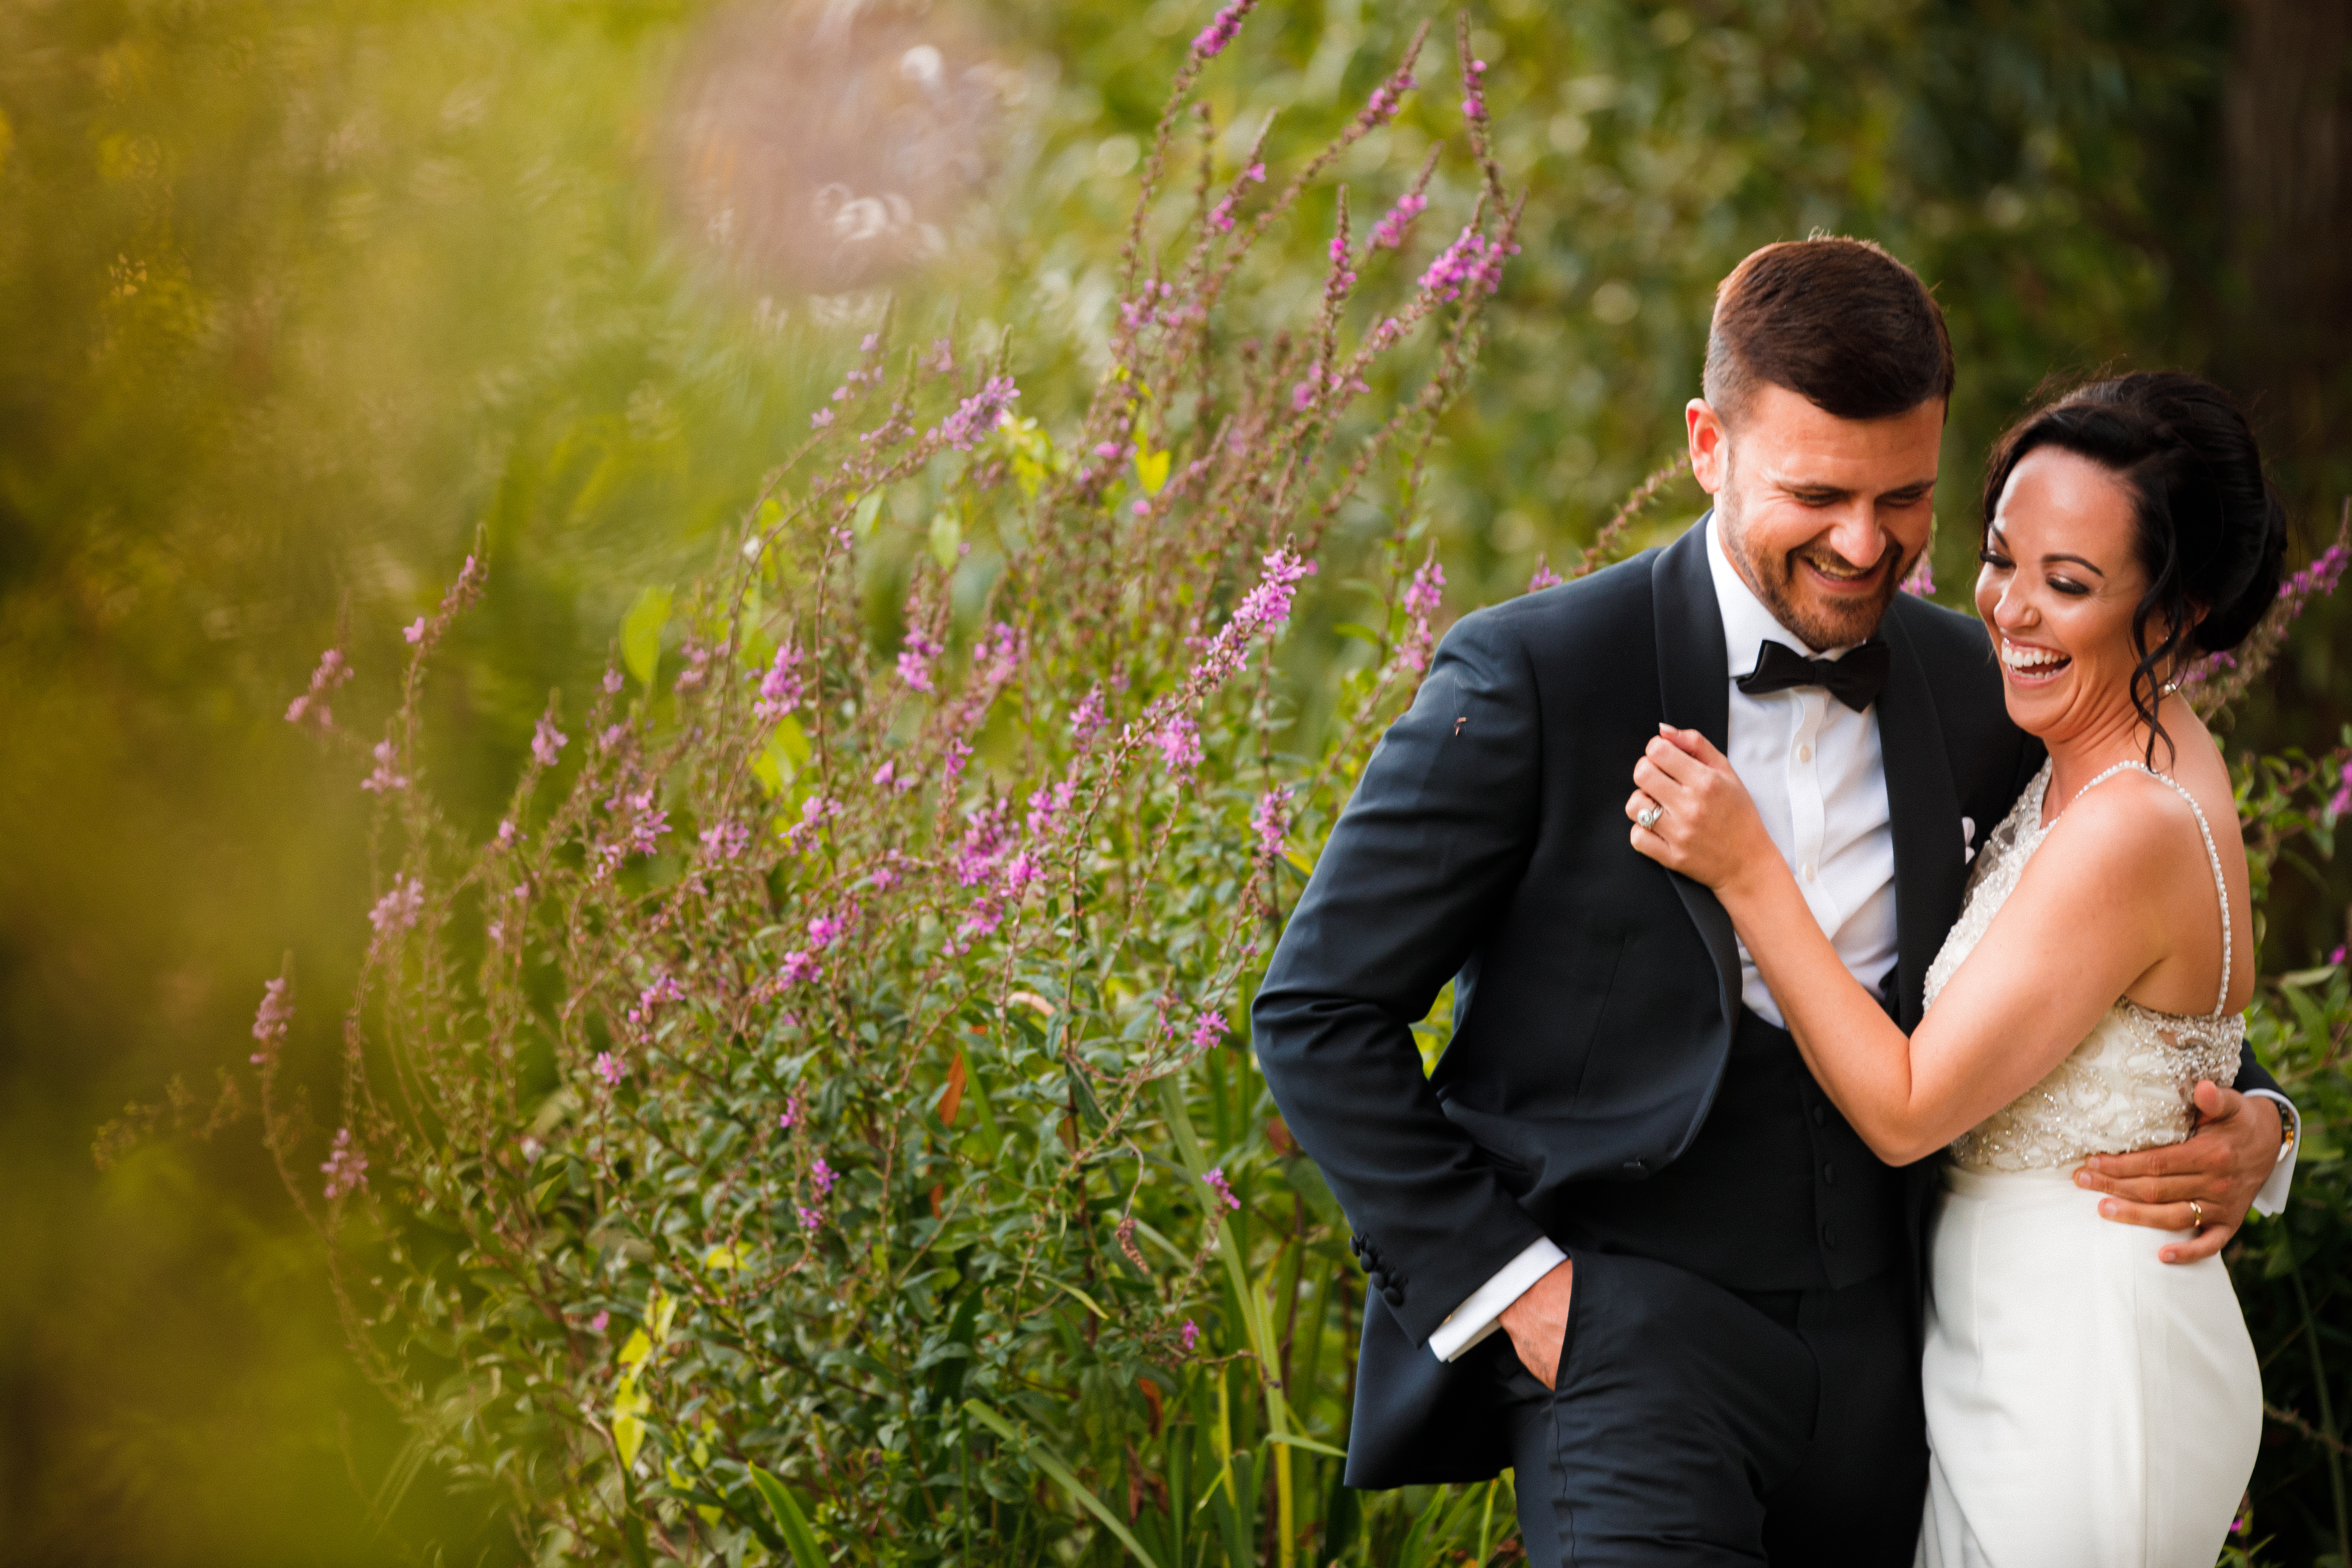 Kent Wedding Photographer| Kent Wedding photography| The Orchard Rooms Maidstone